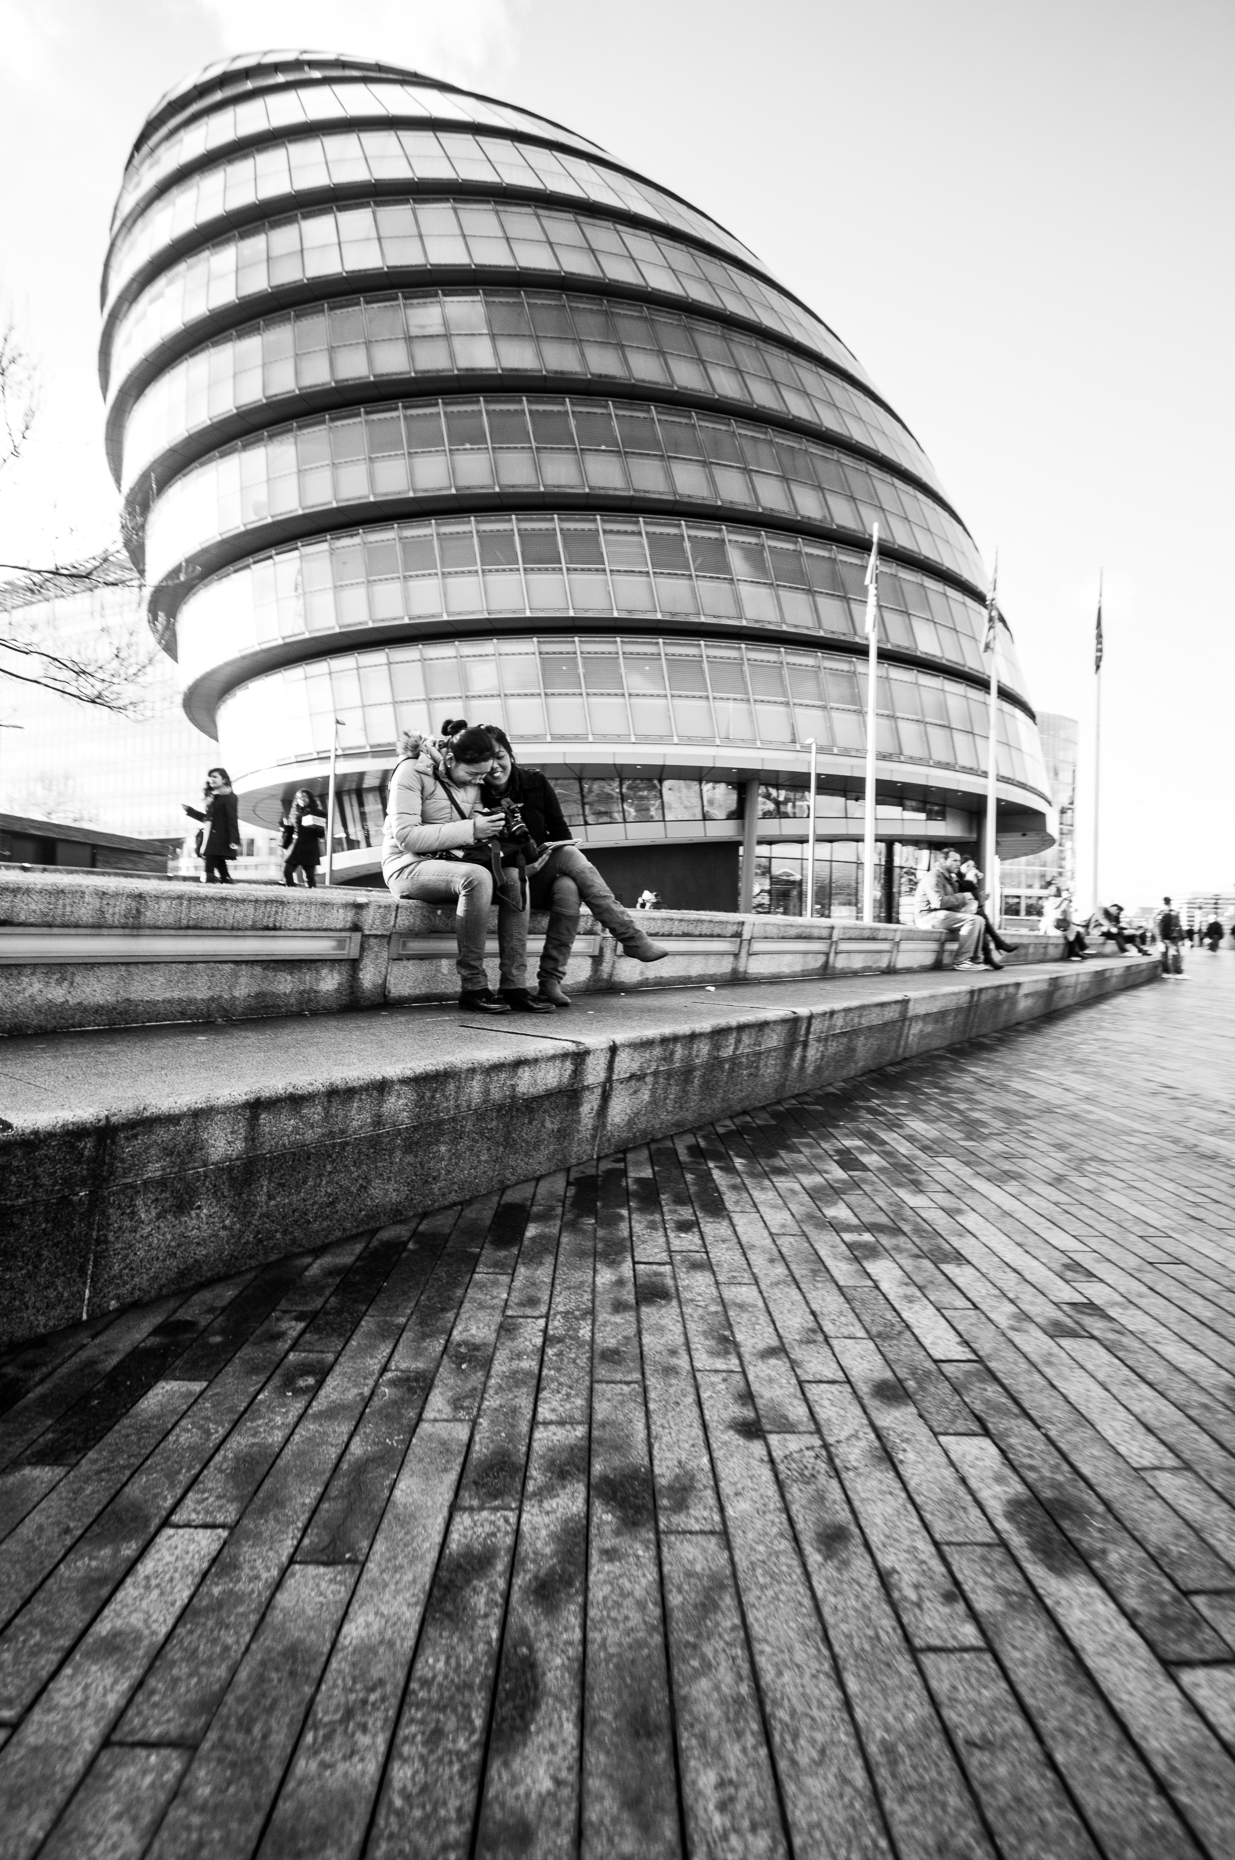 James Woodley Photography - Street Photography - Miami and London-15